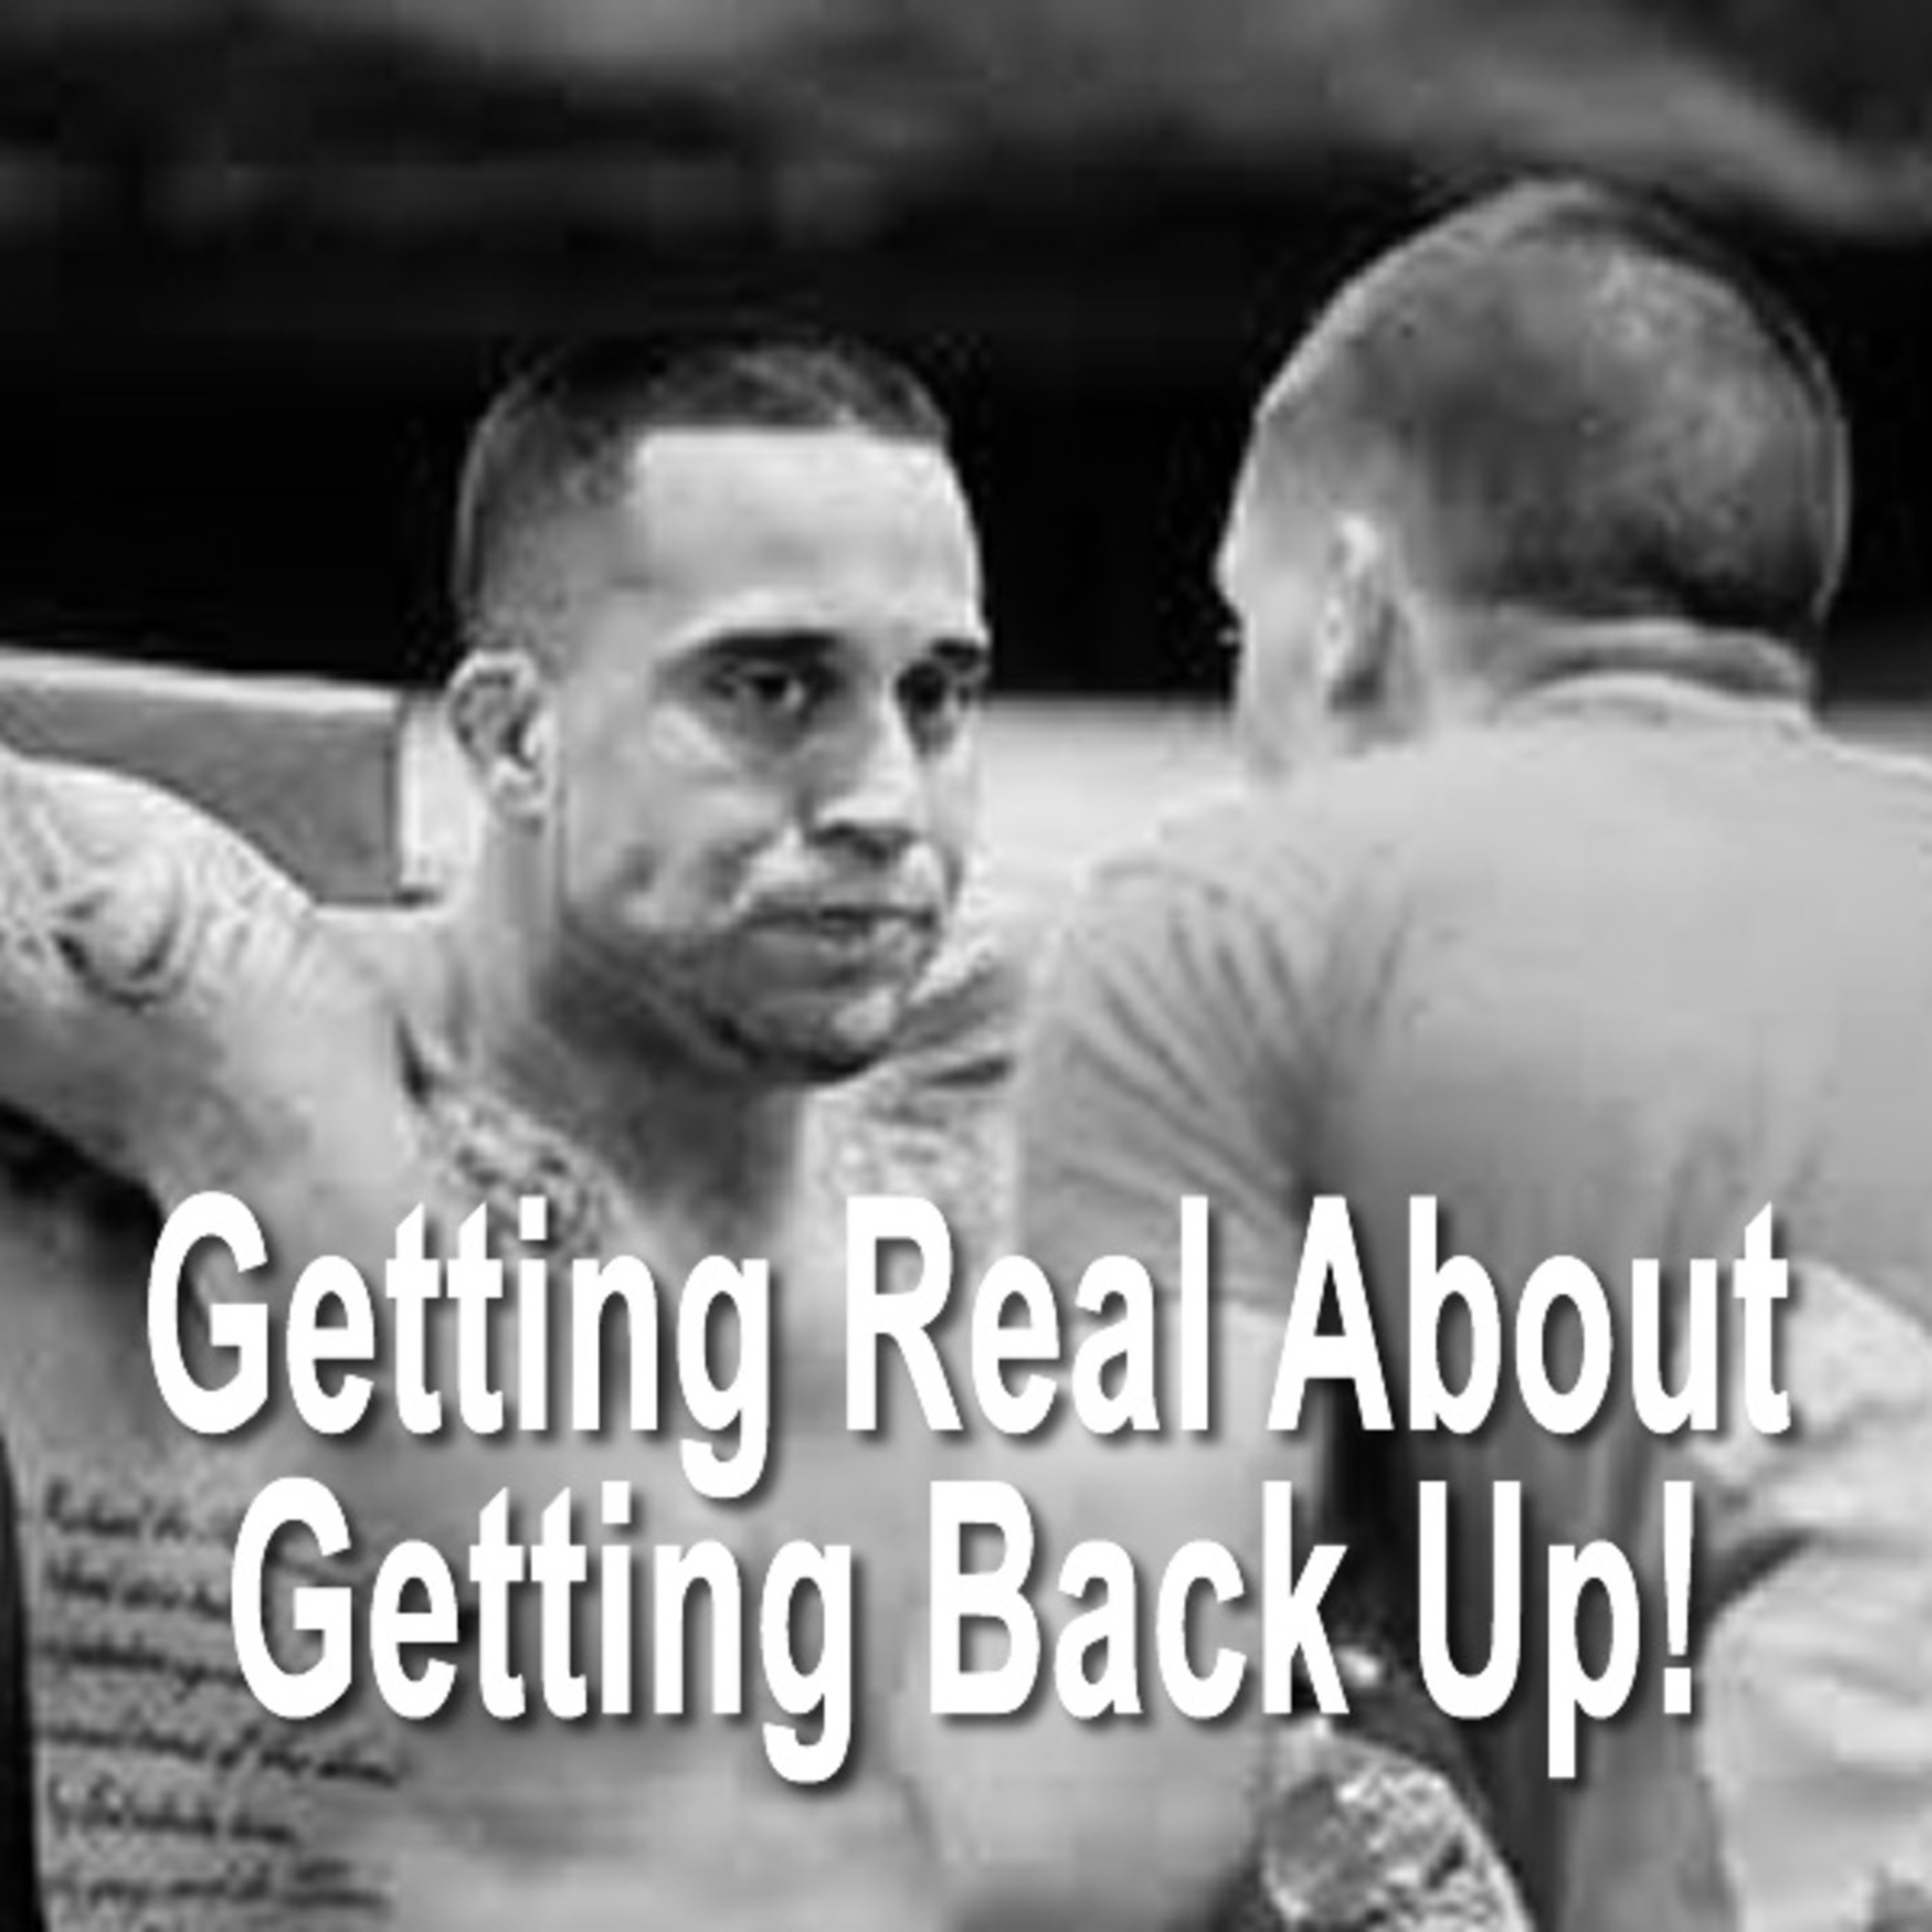 Getting Real About Getting Back Up